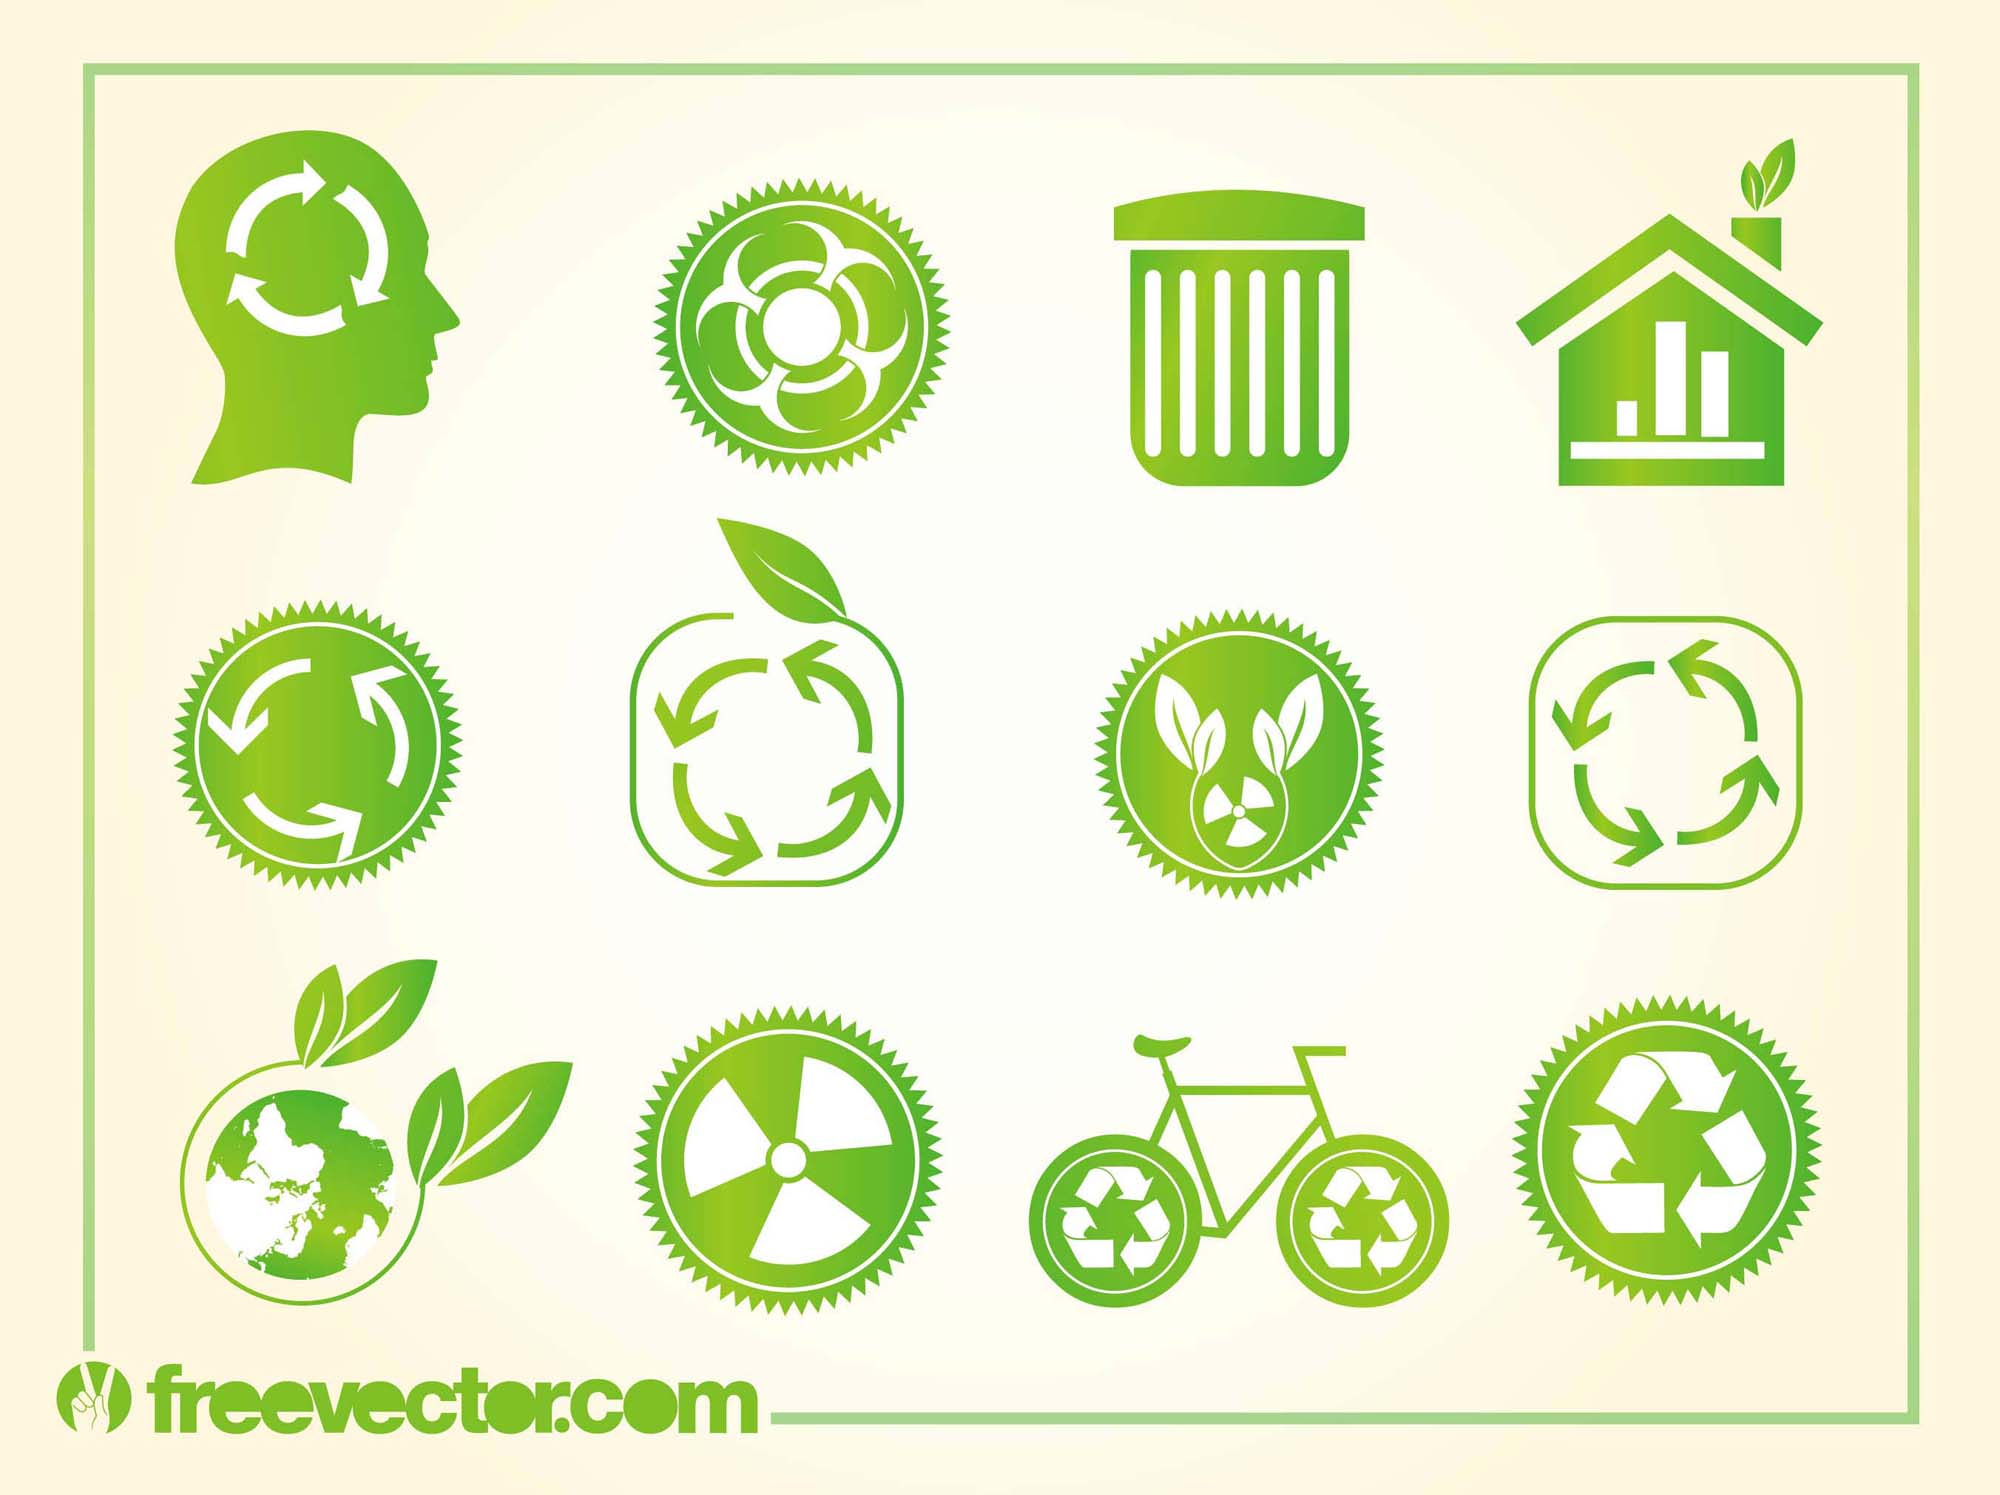 Recycling Logos Vector Art Graphics Freevector